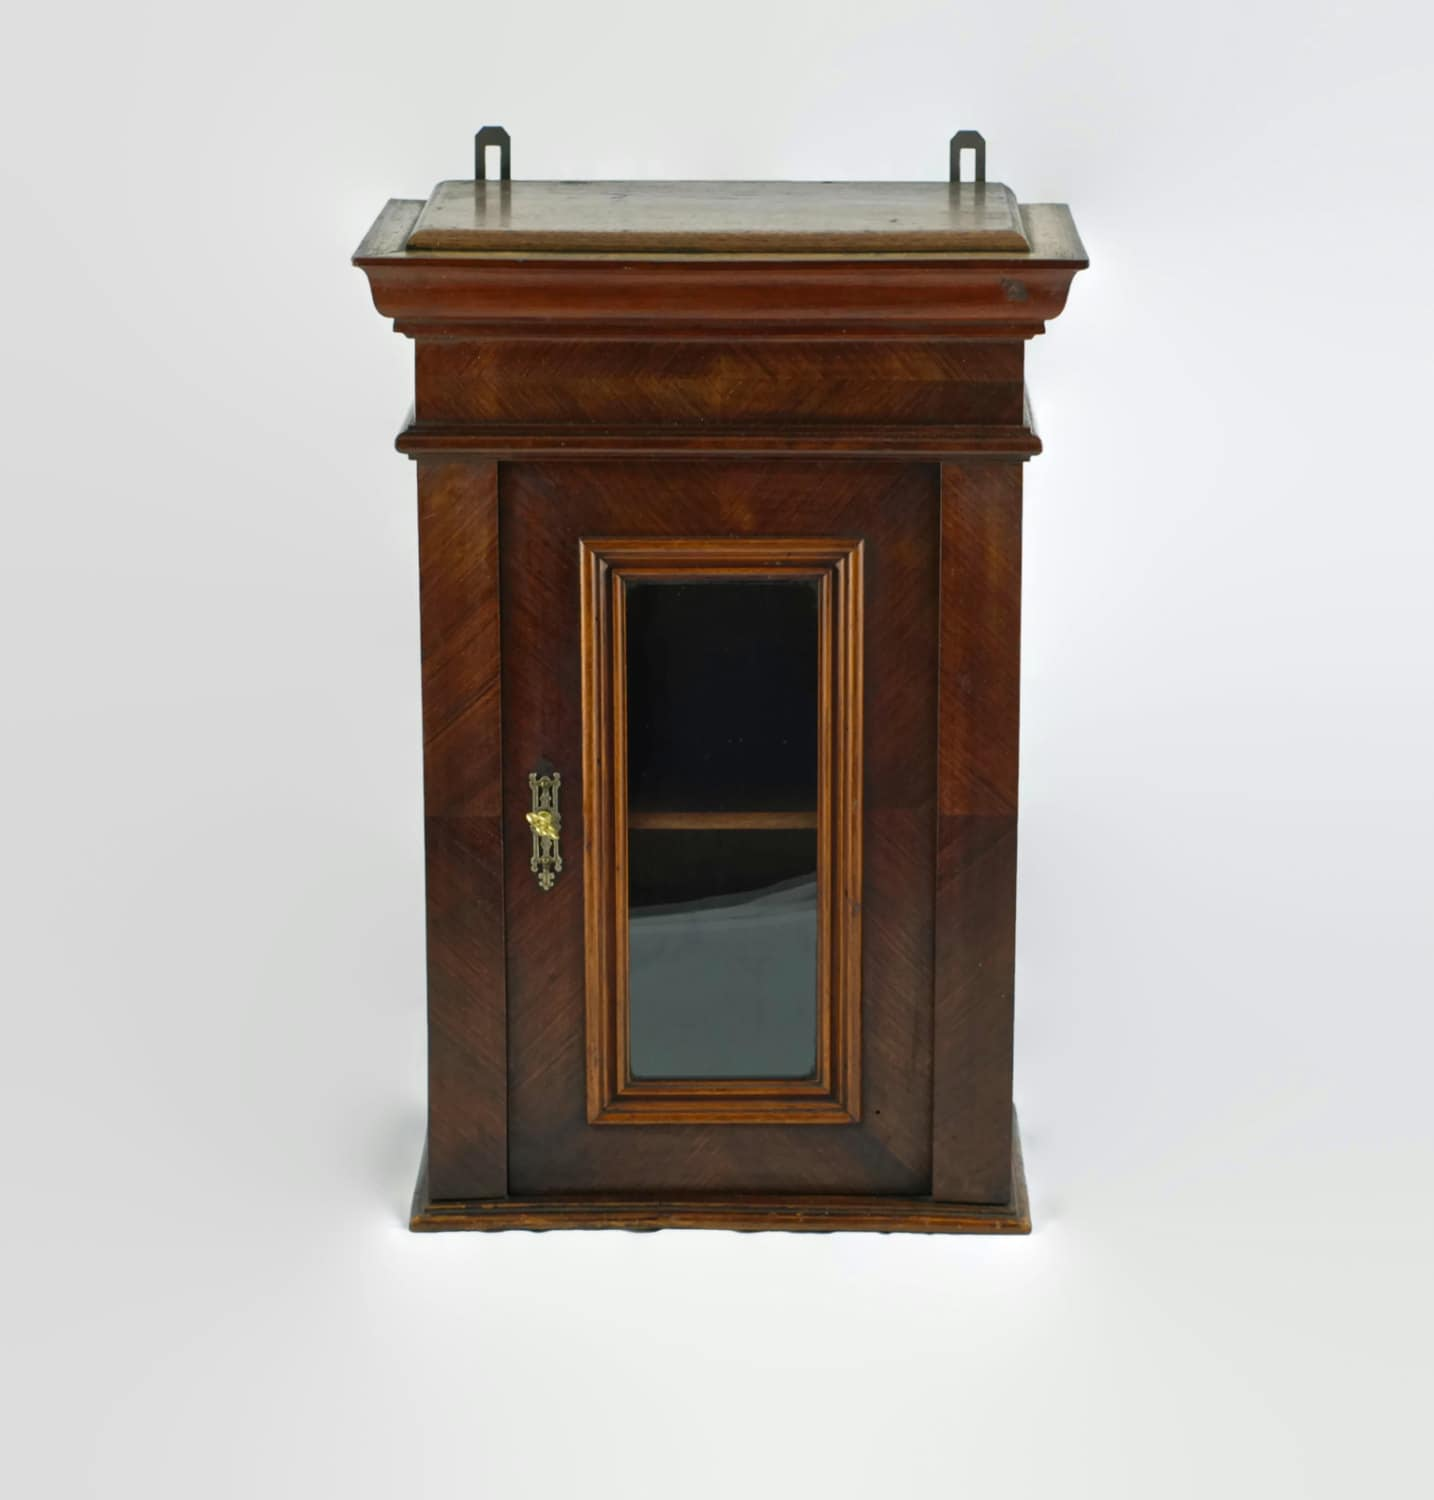 Antique lockable wooden wall cabinet with inset glass door